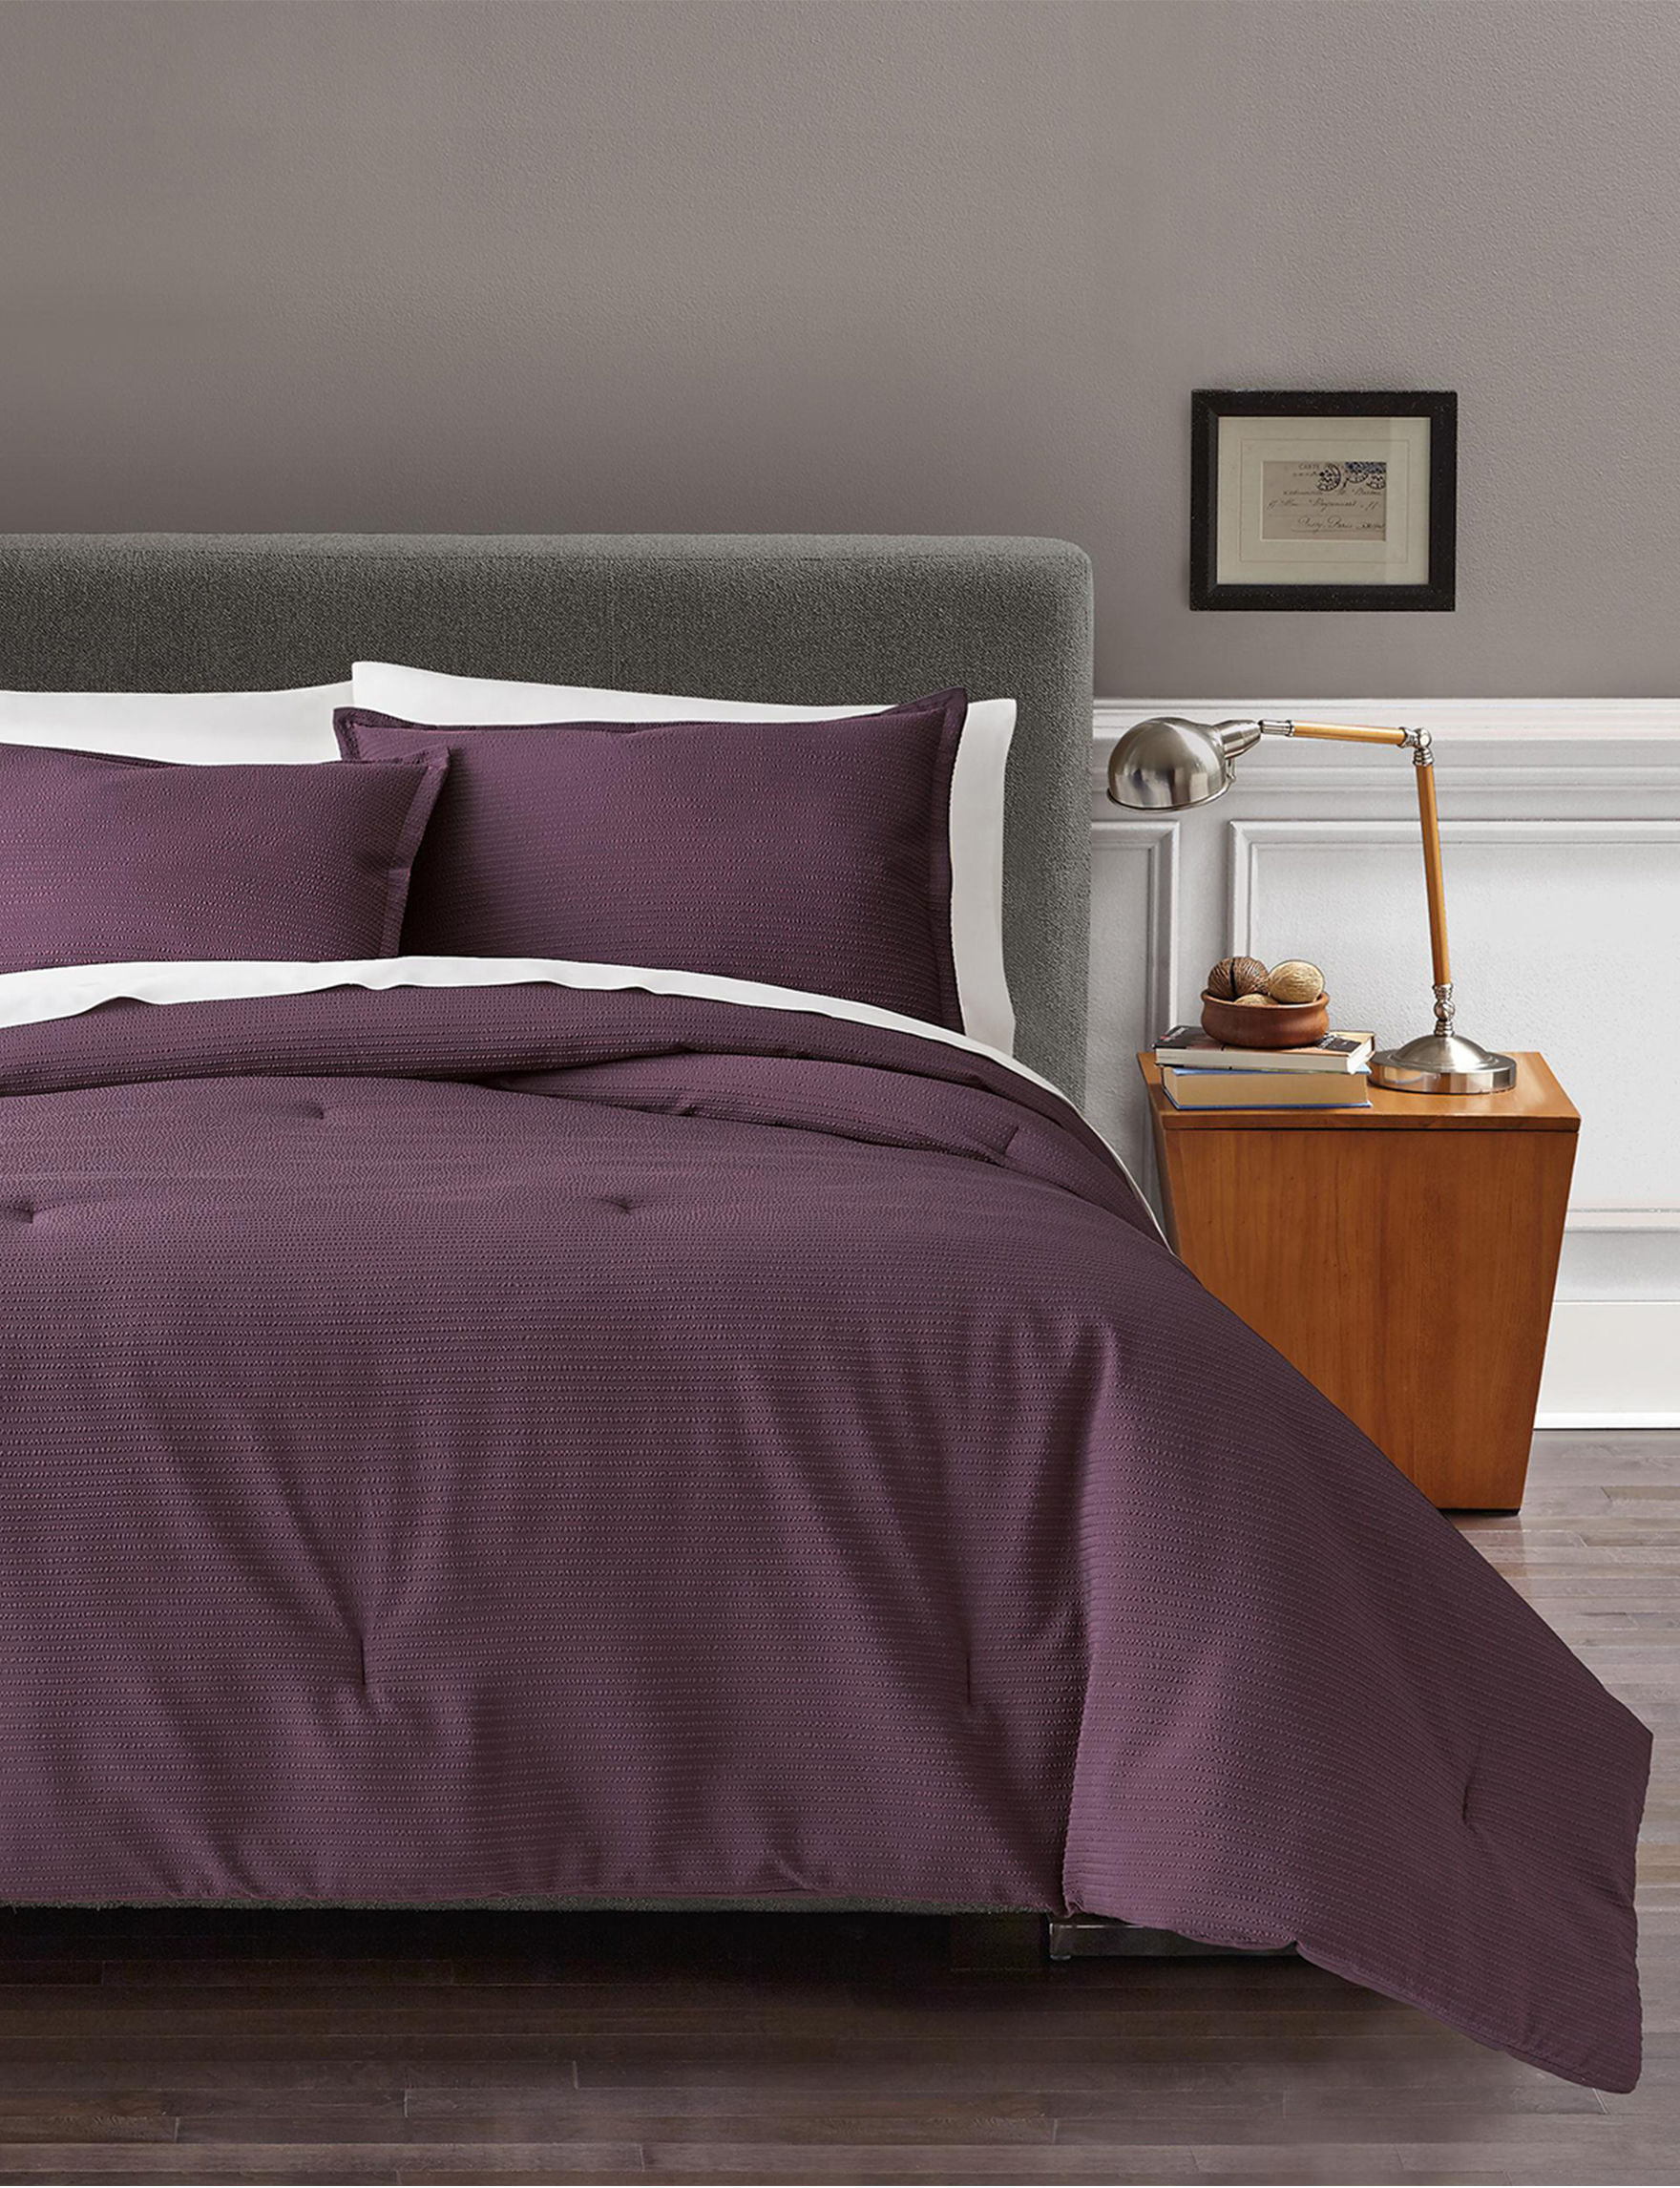 Great Hotels Collection Purple Comforters & Comforter Sets